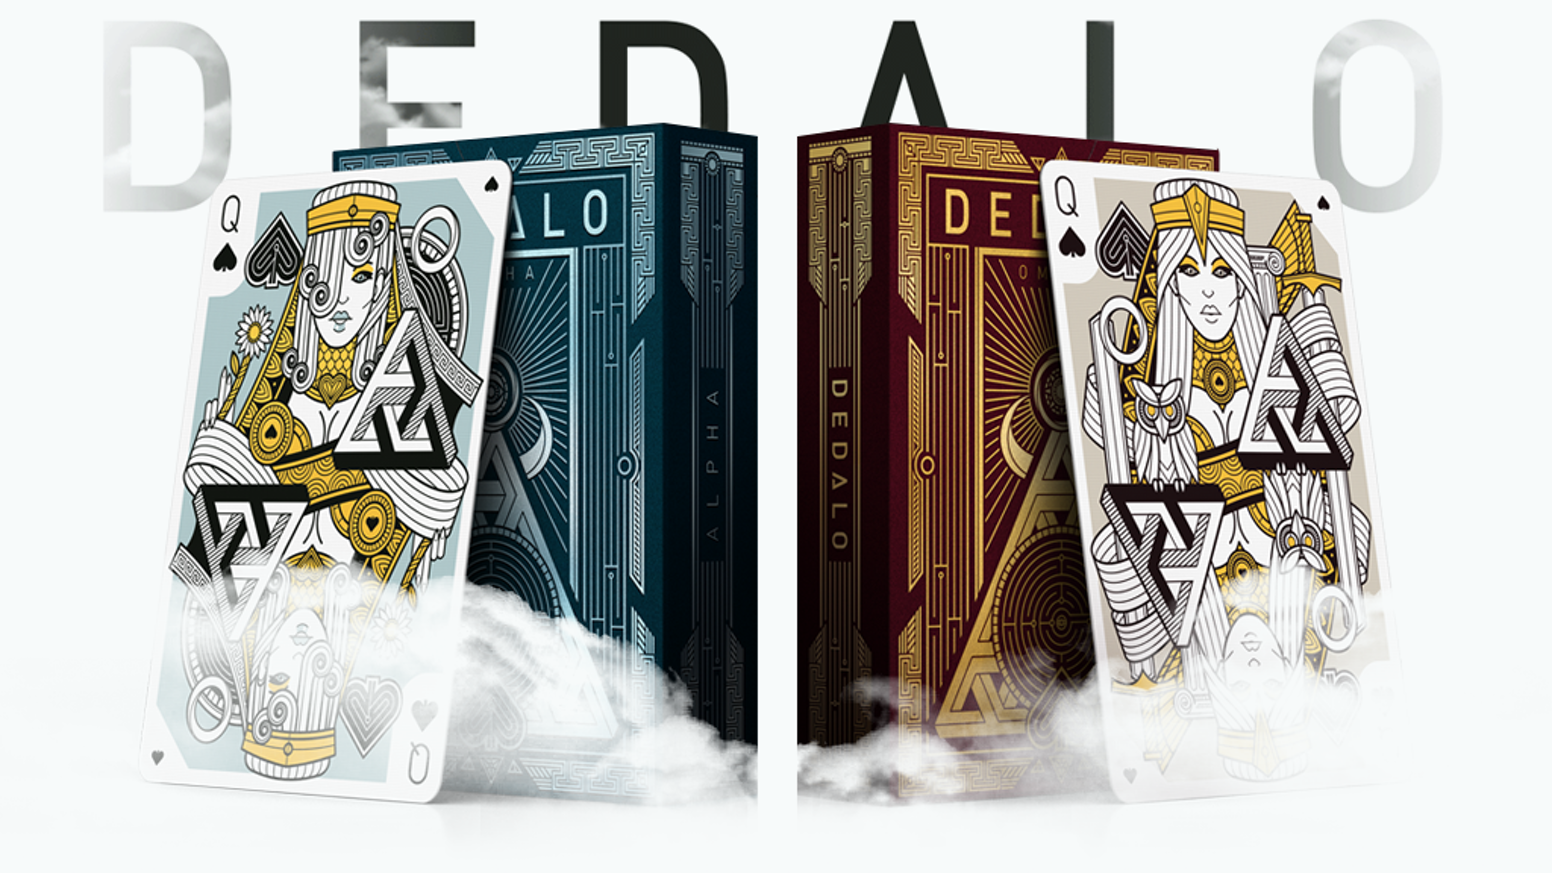 Custom poker size playing cards. Inspired by mythology, drawn with a sharp and modern style, printed by EPCC.